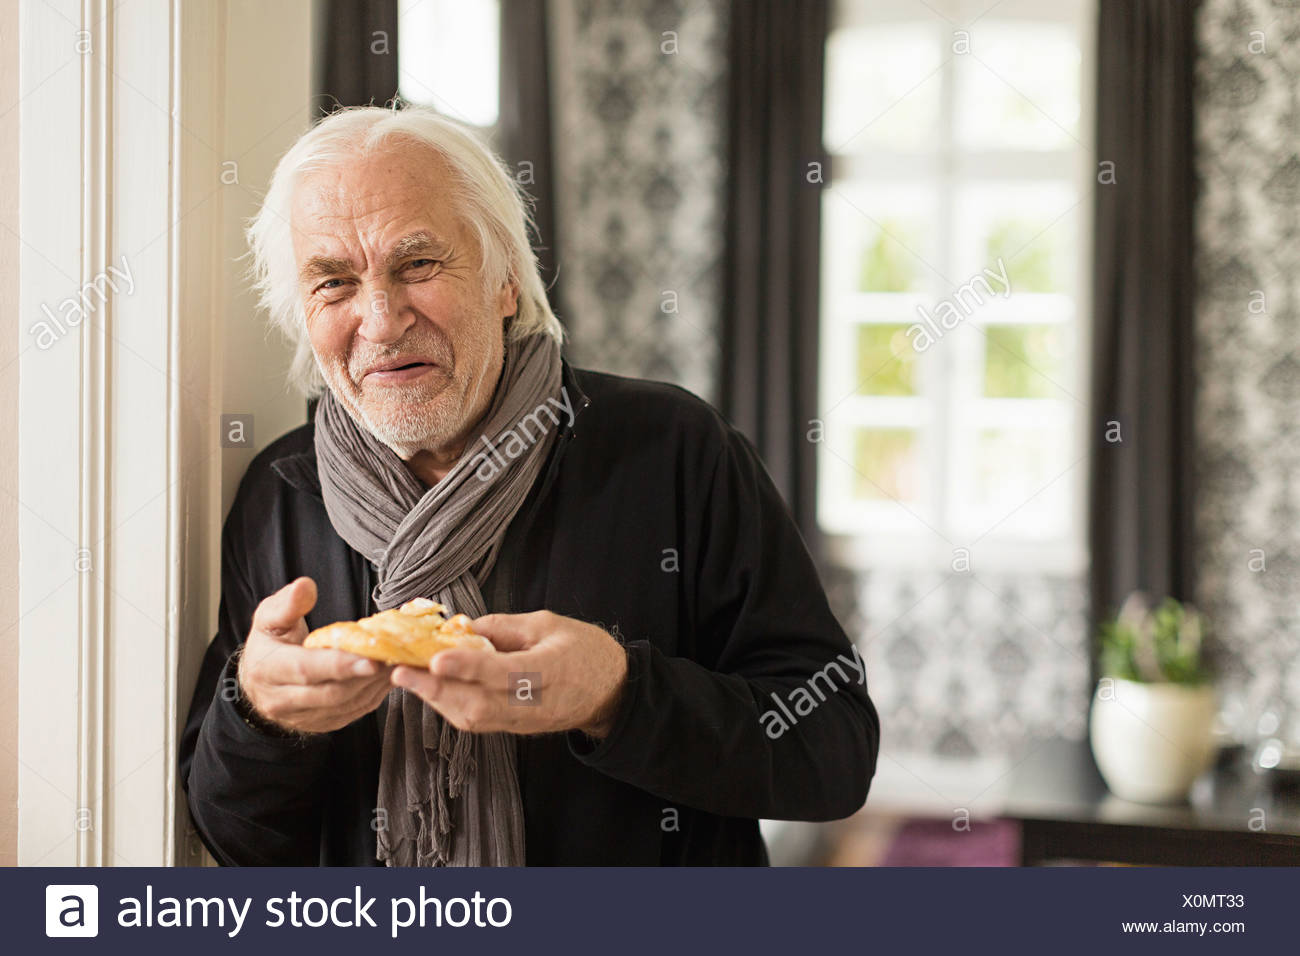 Senior man holding danish pastry - Stock Image